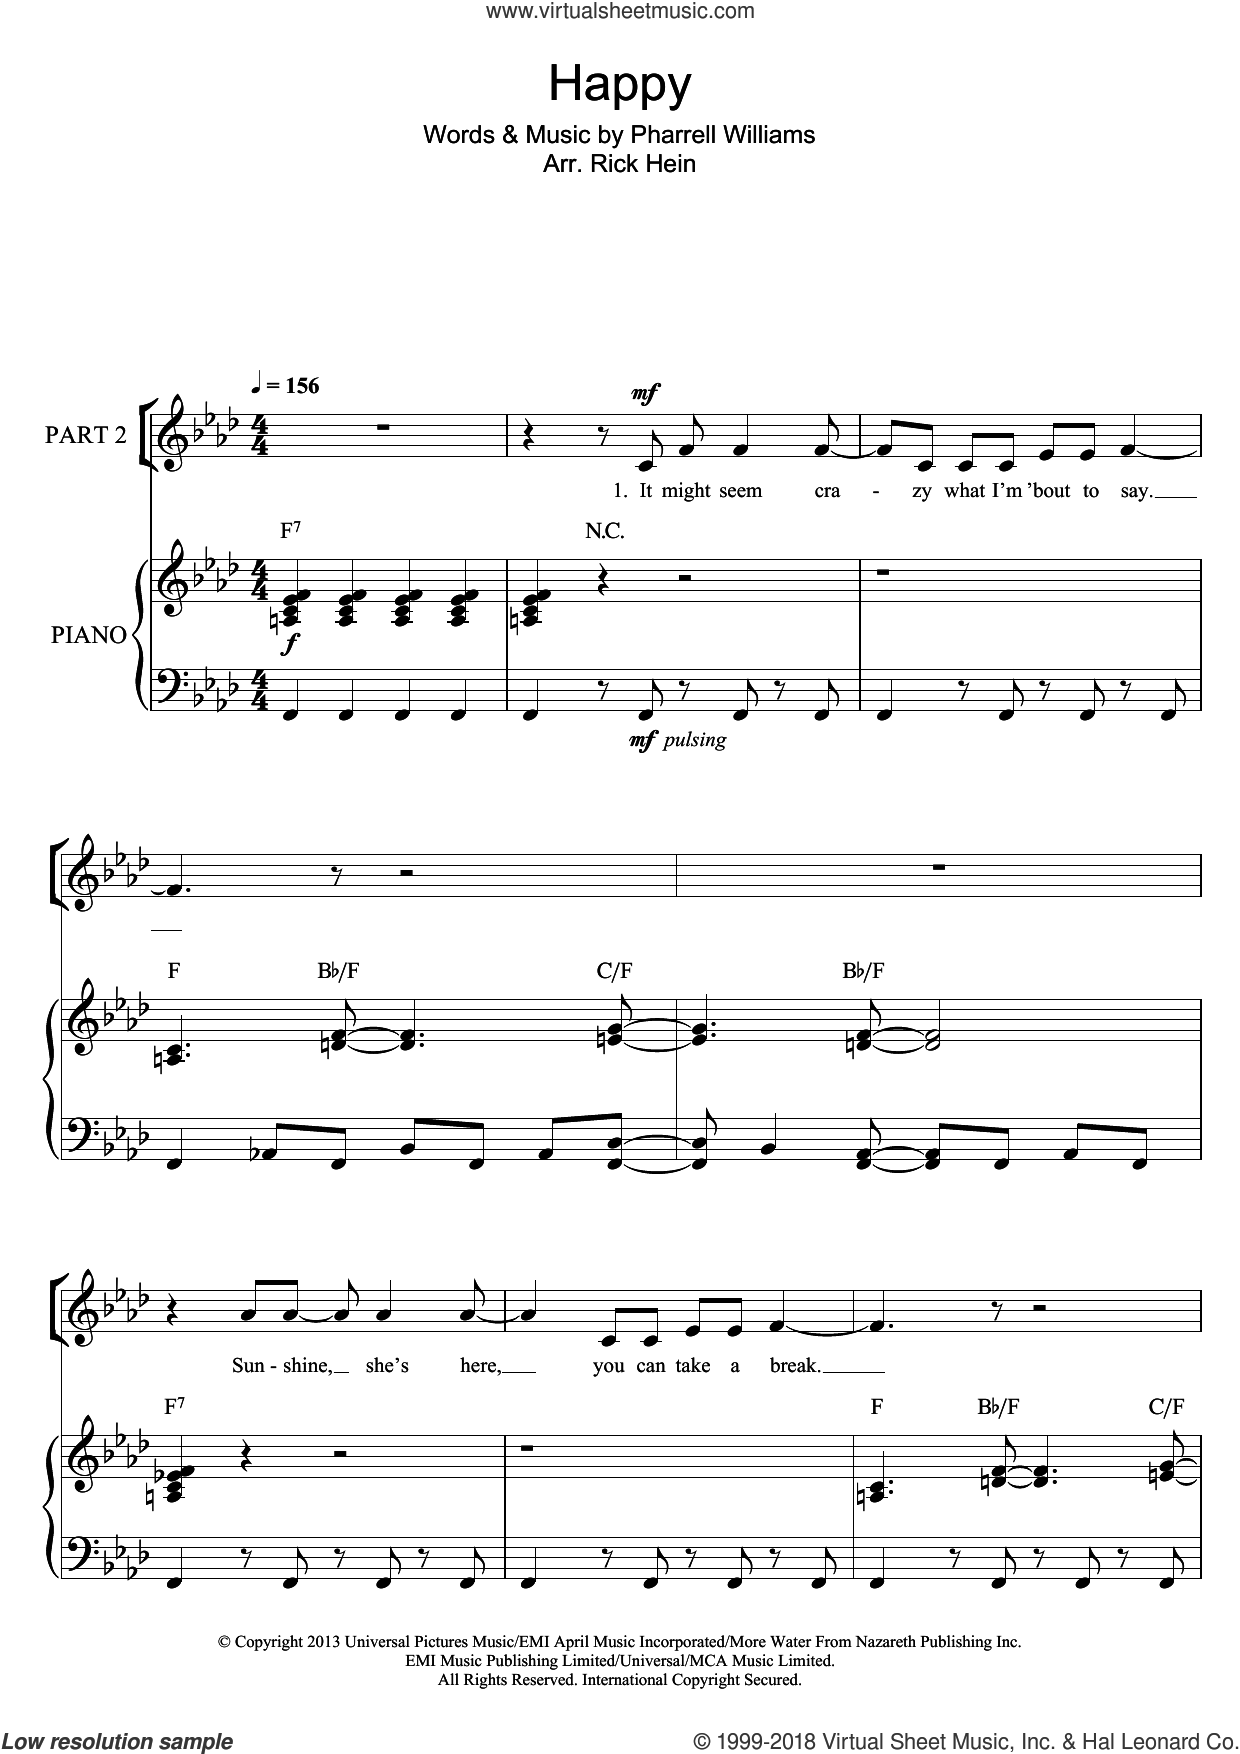 Happy (arr. Rick Hein) sheet music for choir by Pharrell Williams. Score Image Preview.